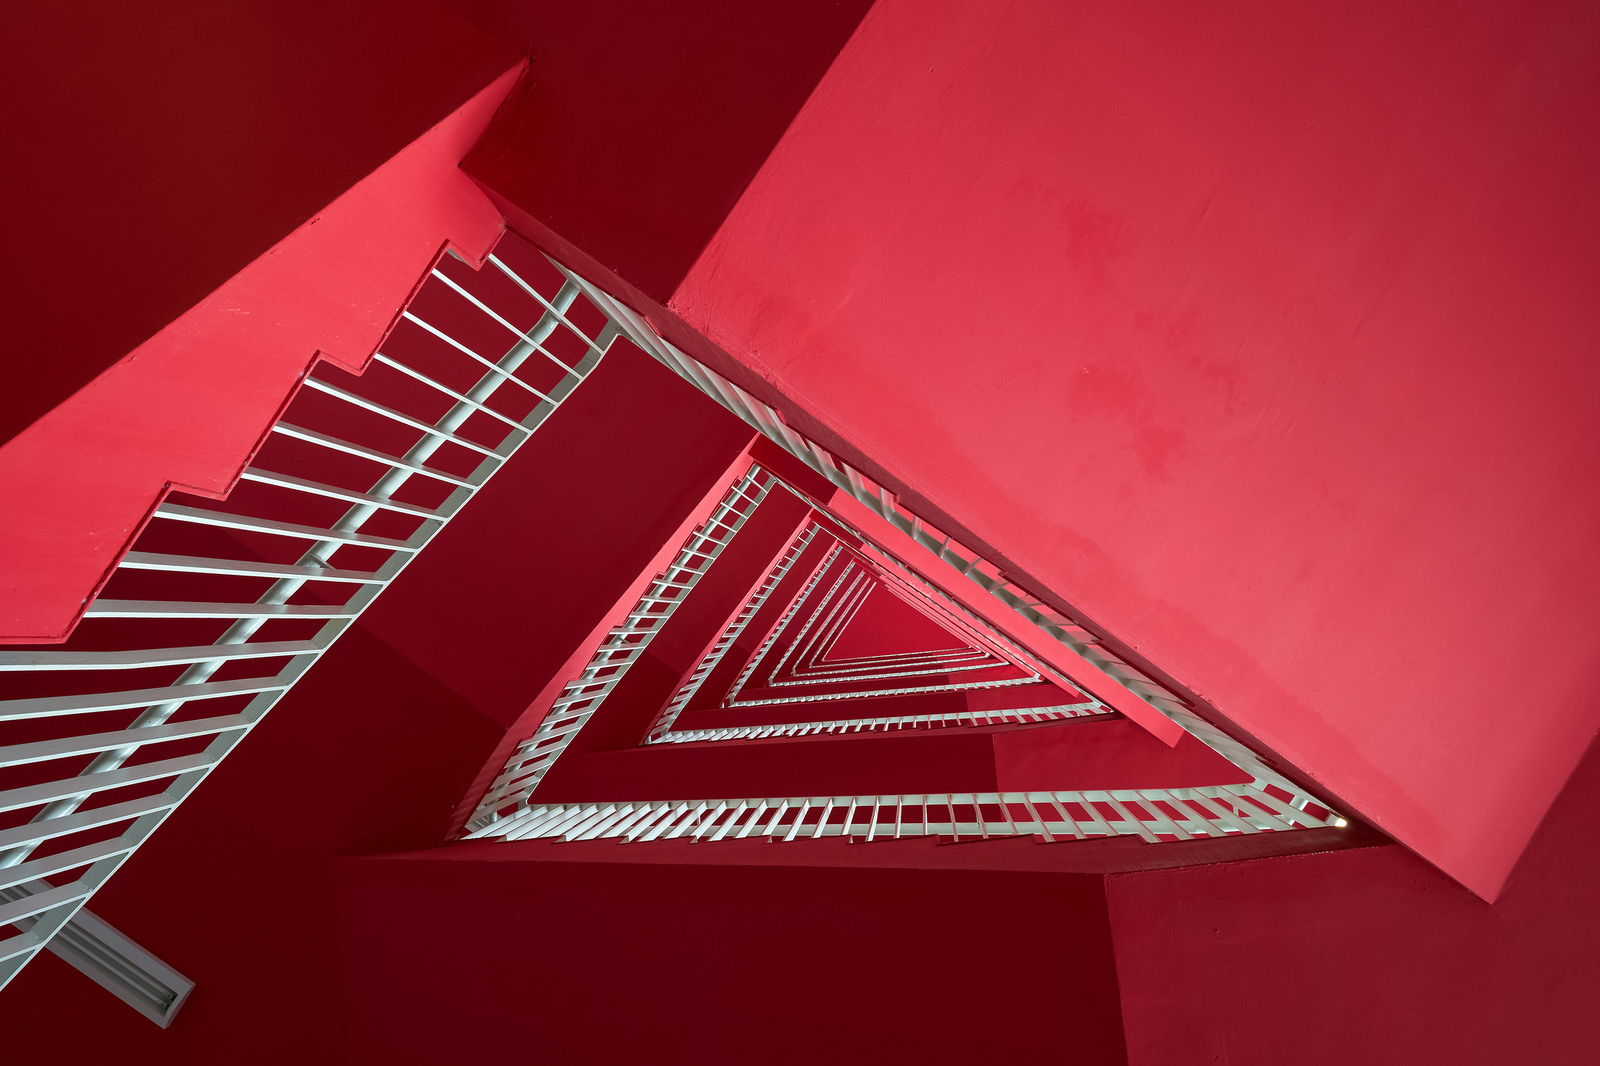 All sizes | Spiral of Red | Flickr - Photo Sharing!